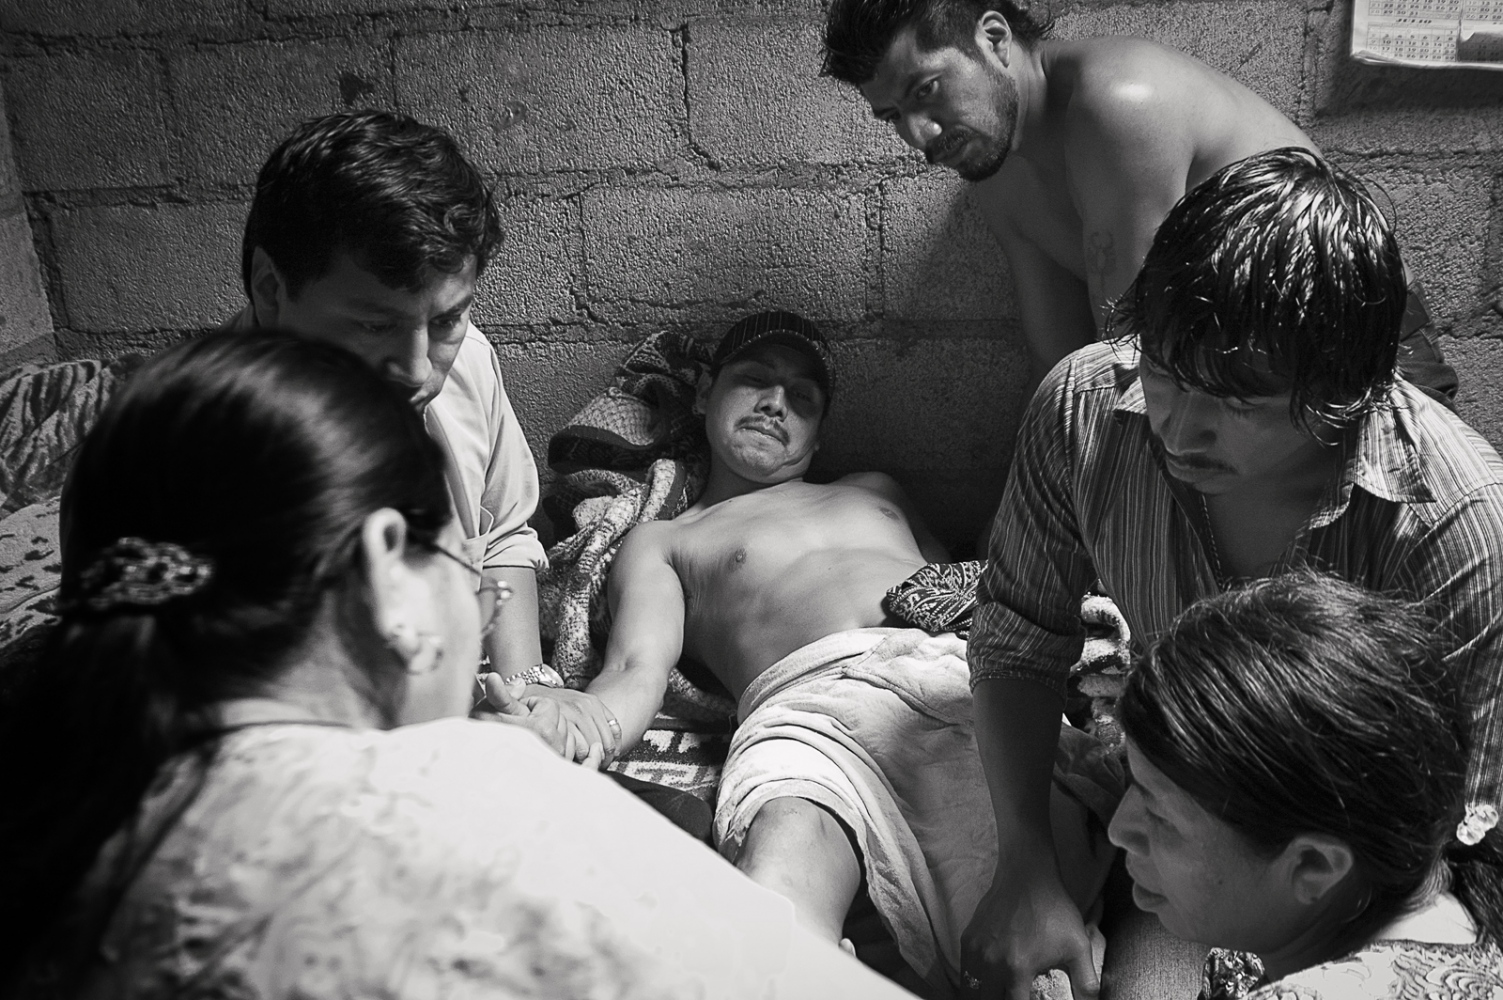 Berta Navichoc setting Pedro Pablo Mendoza's broken ankle after a work related accident. Pedro is surrounded by his family.